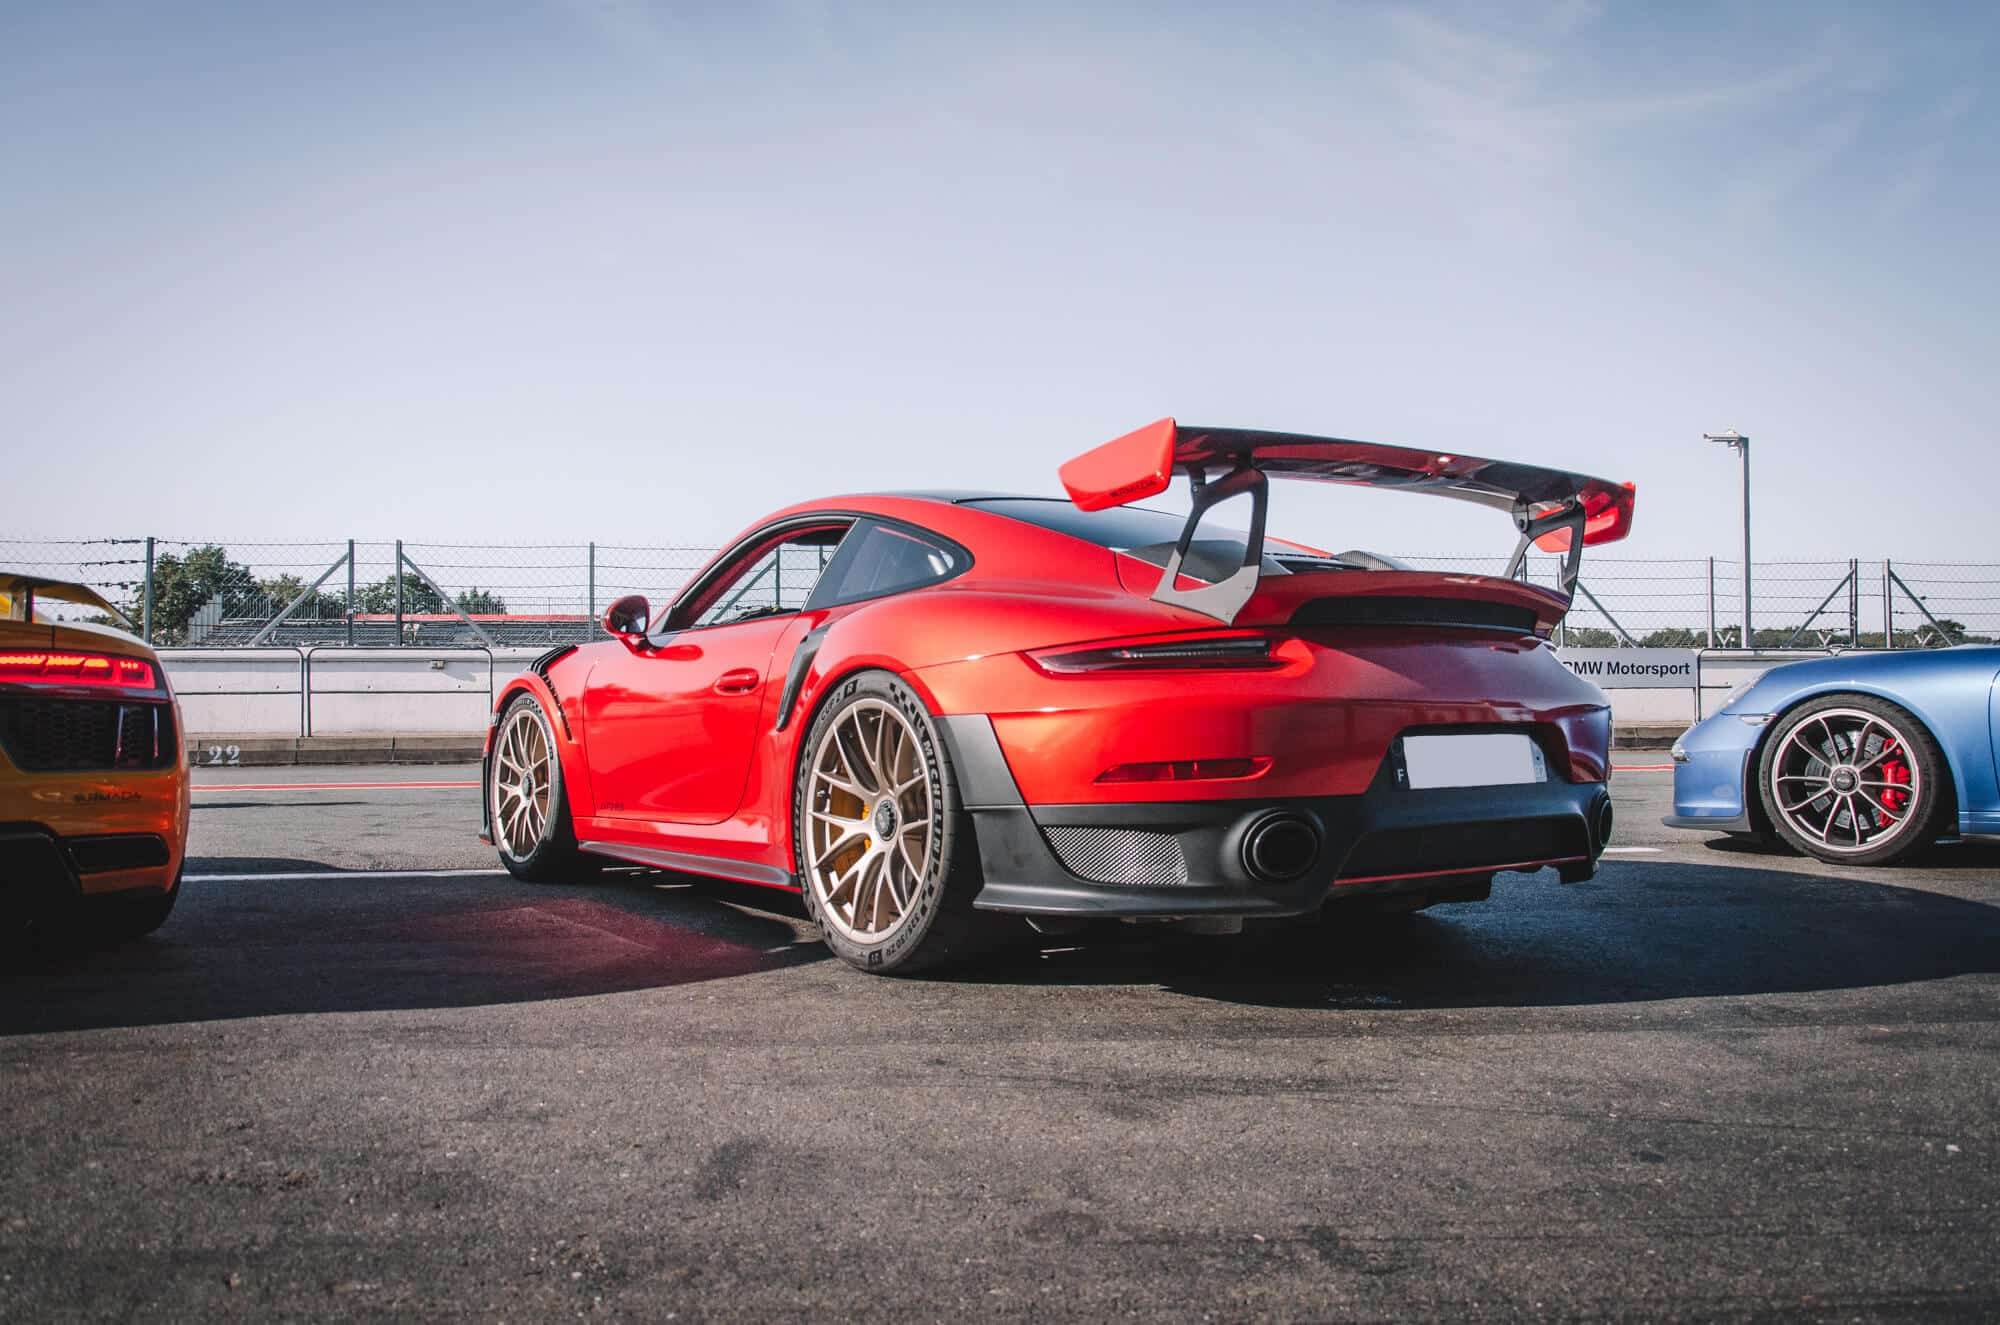 armada-racing-Trackday-experience-val-de-vienne-aout-2019-24